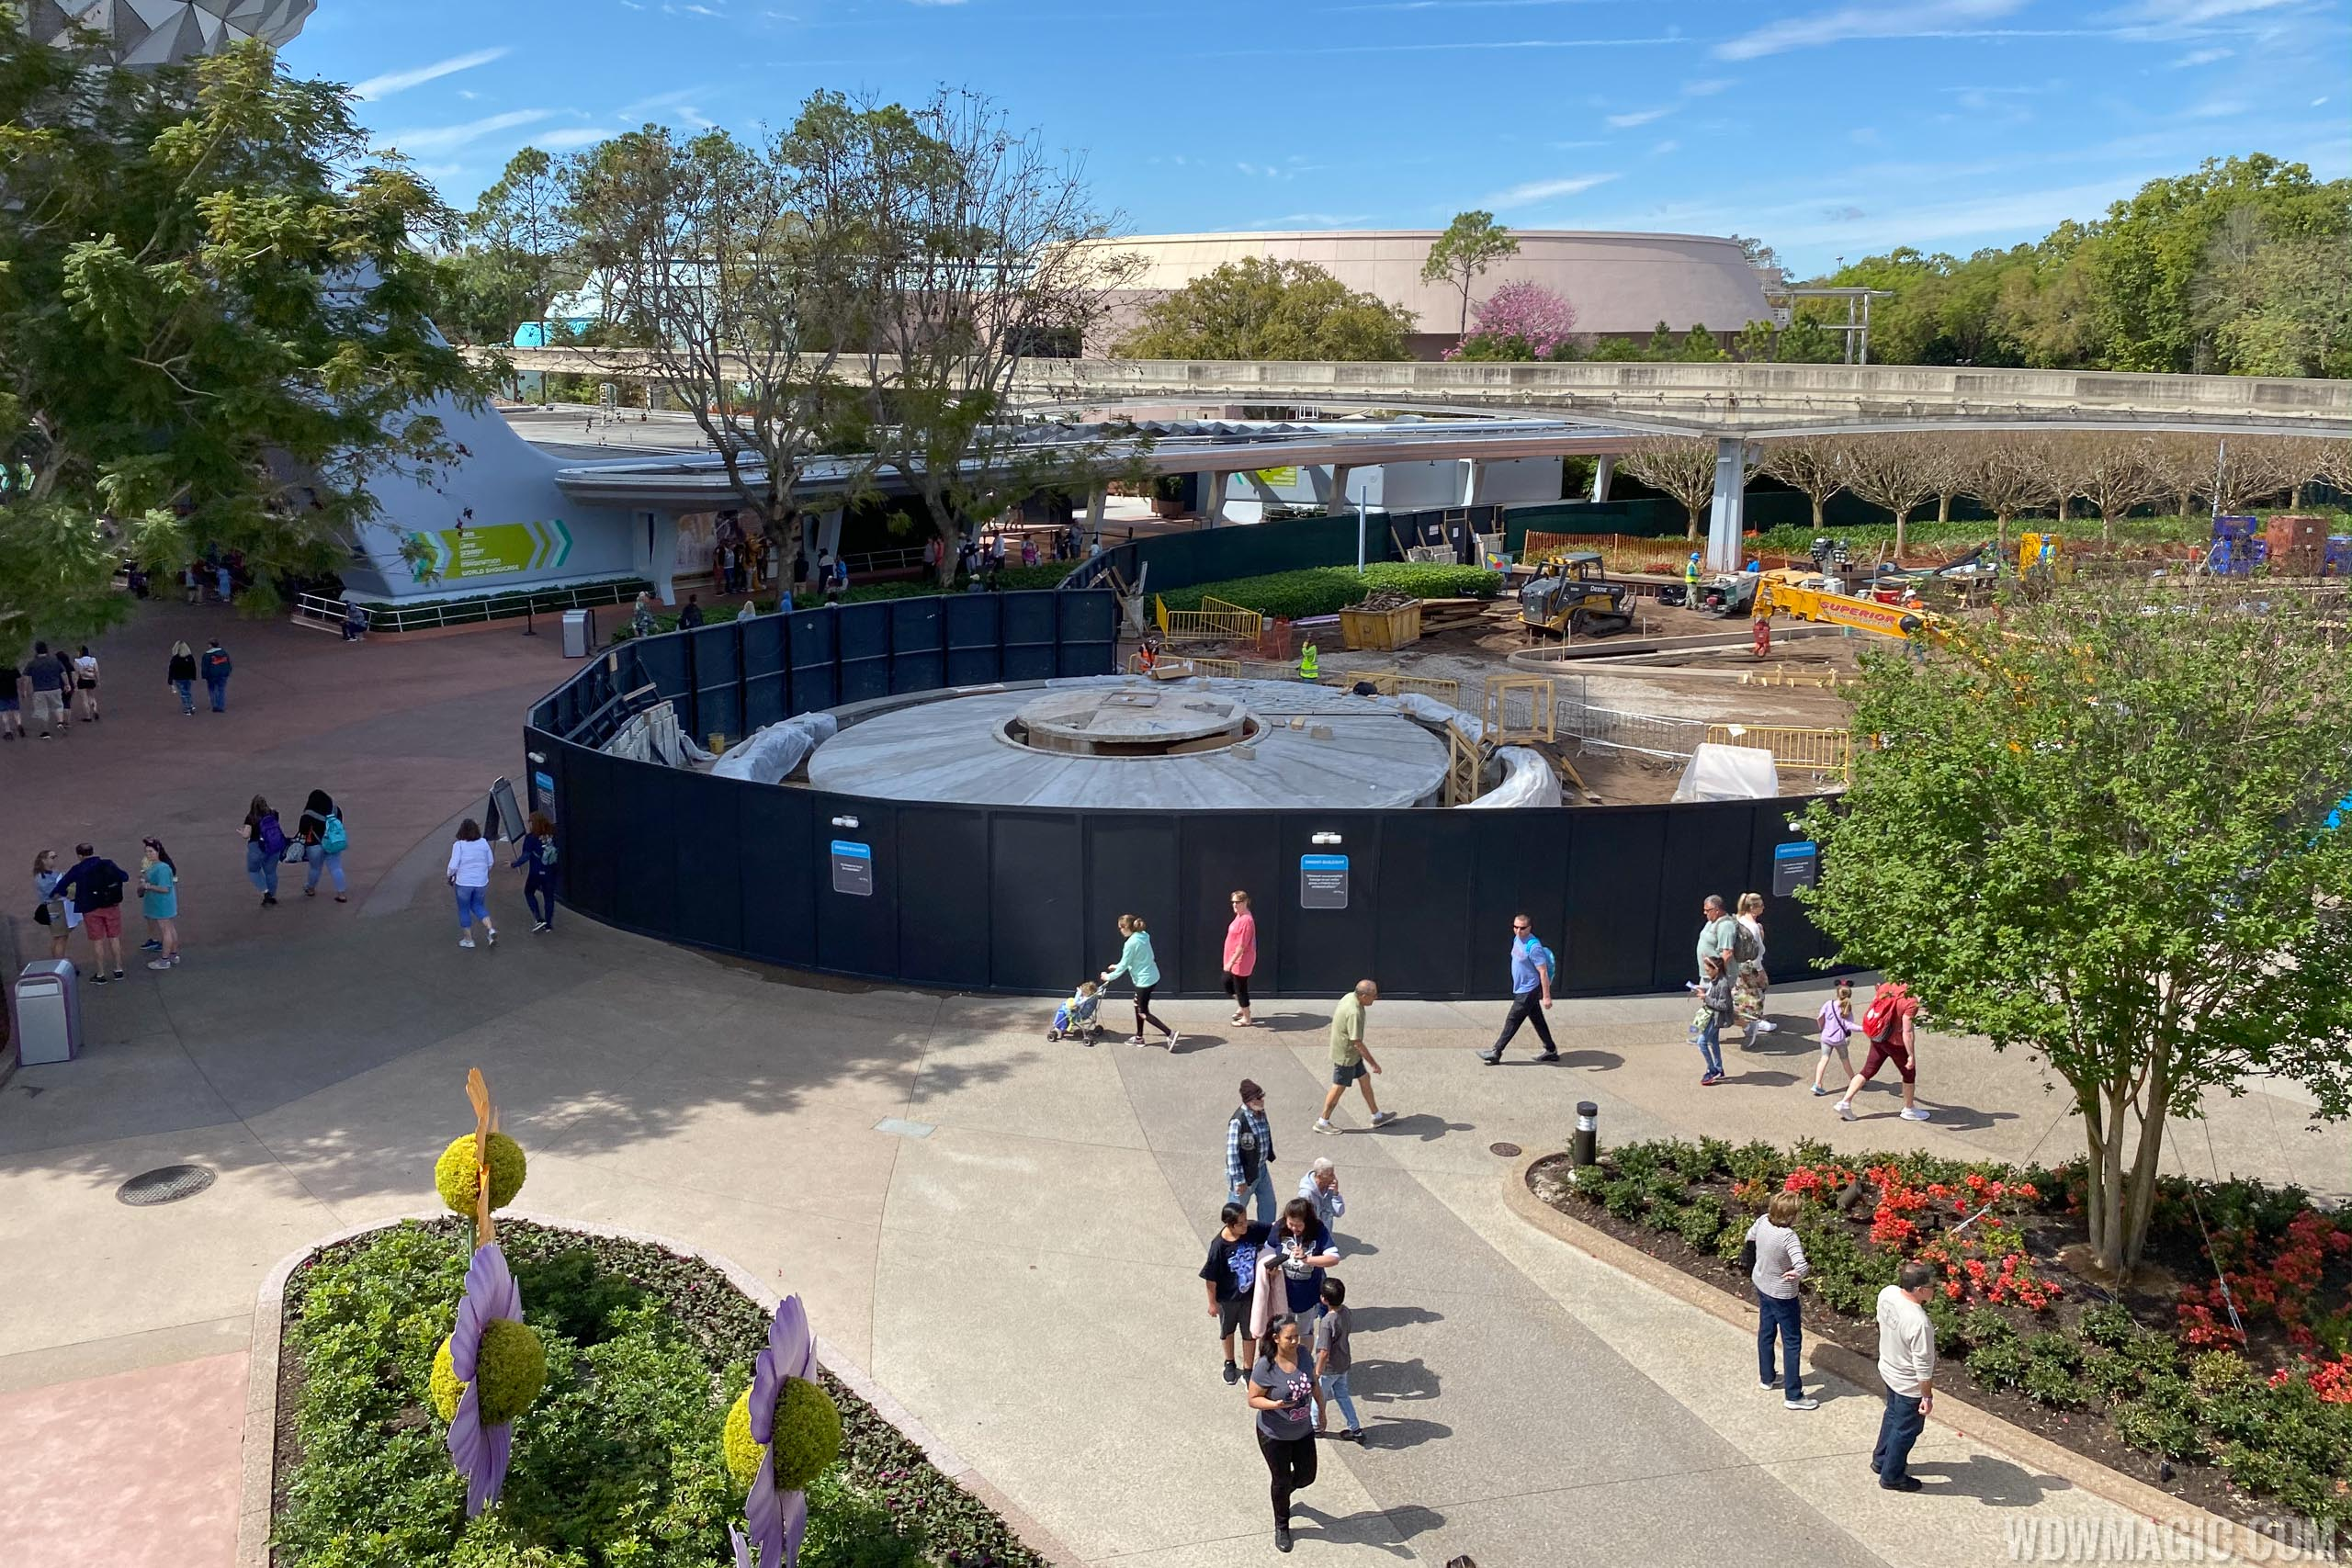 Epcot main entrance area and fountain construction - March 10 2020